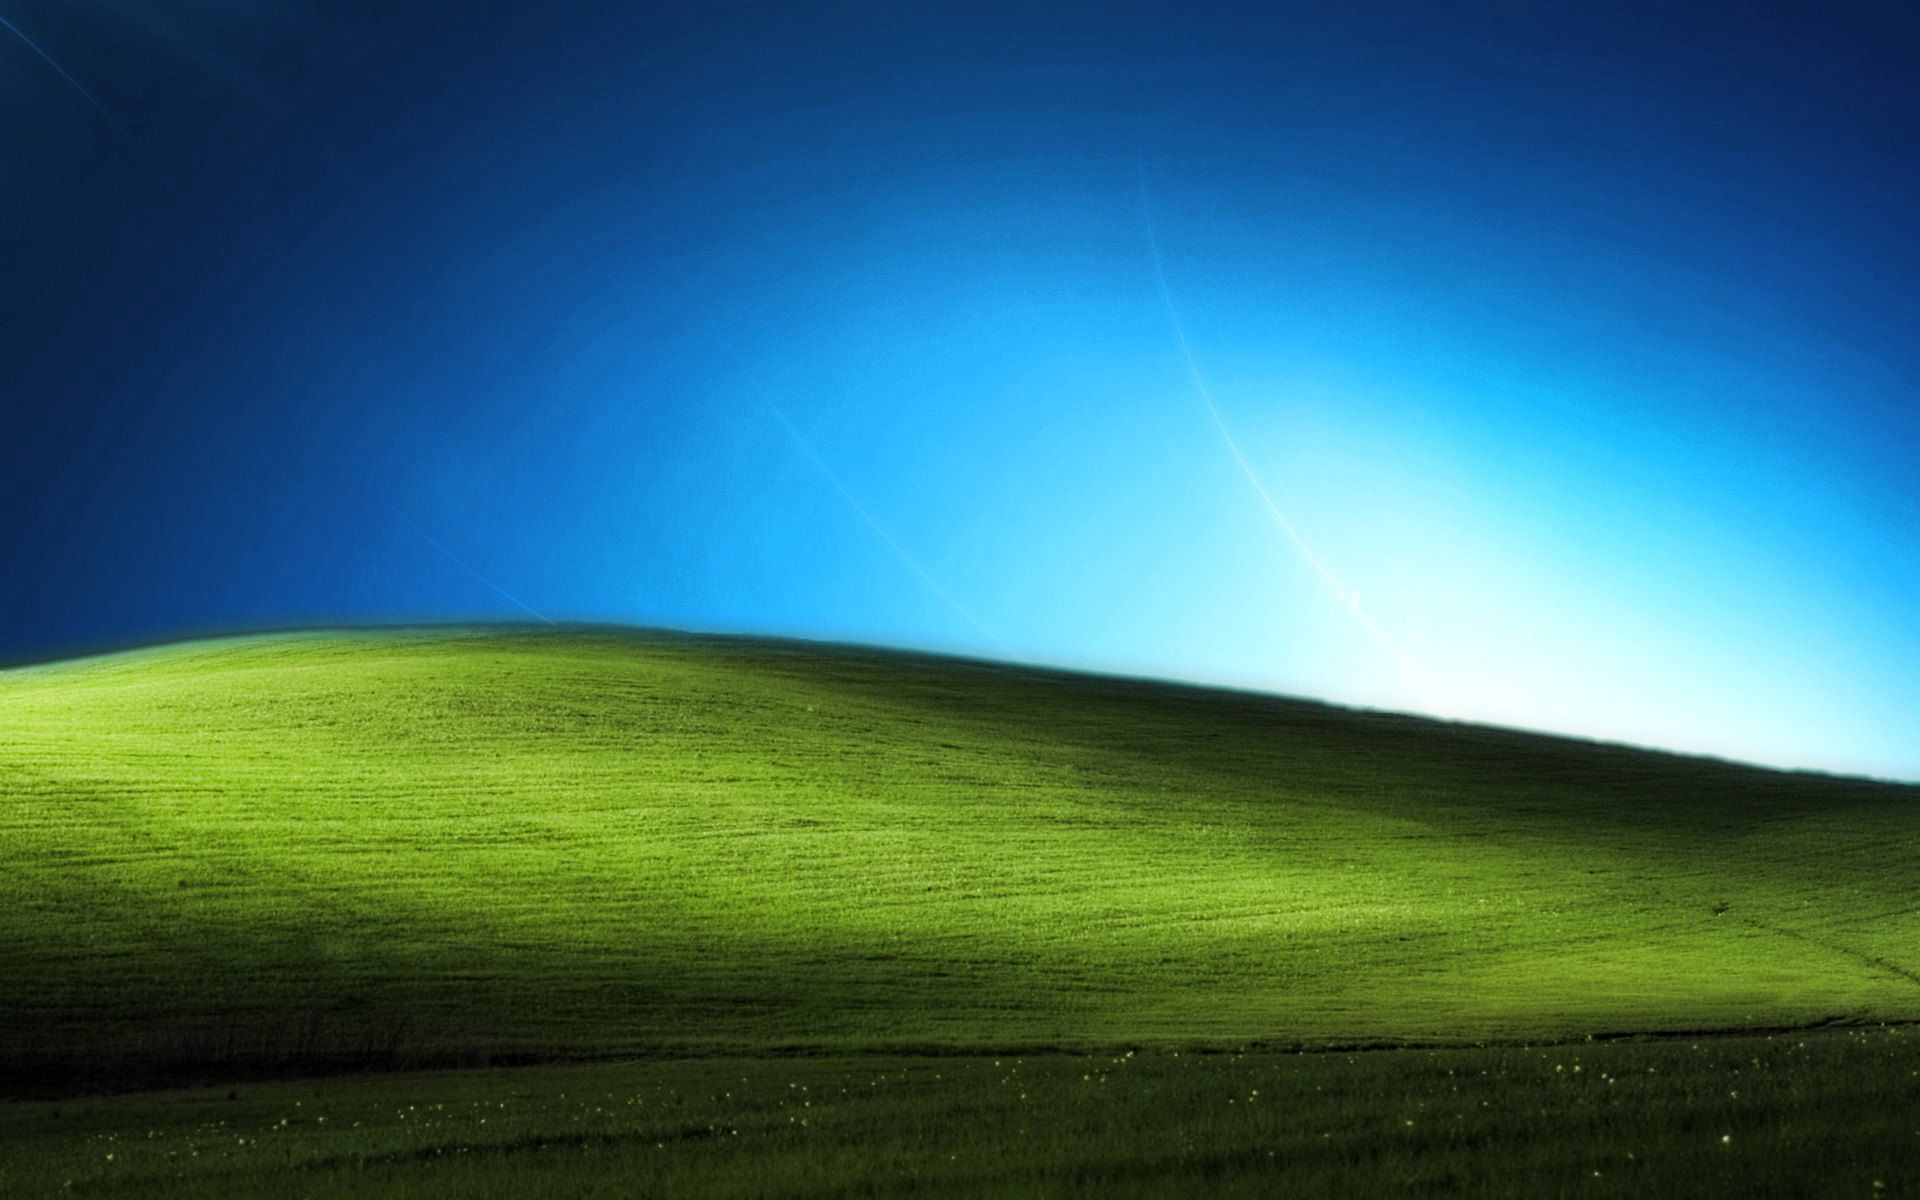 Windows Xp Wallpapers Hd Wallpaper 4k Hd Wallpaper 4k Desktop Wallpapers Backgrounds Computer Wallpaper